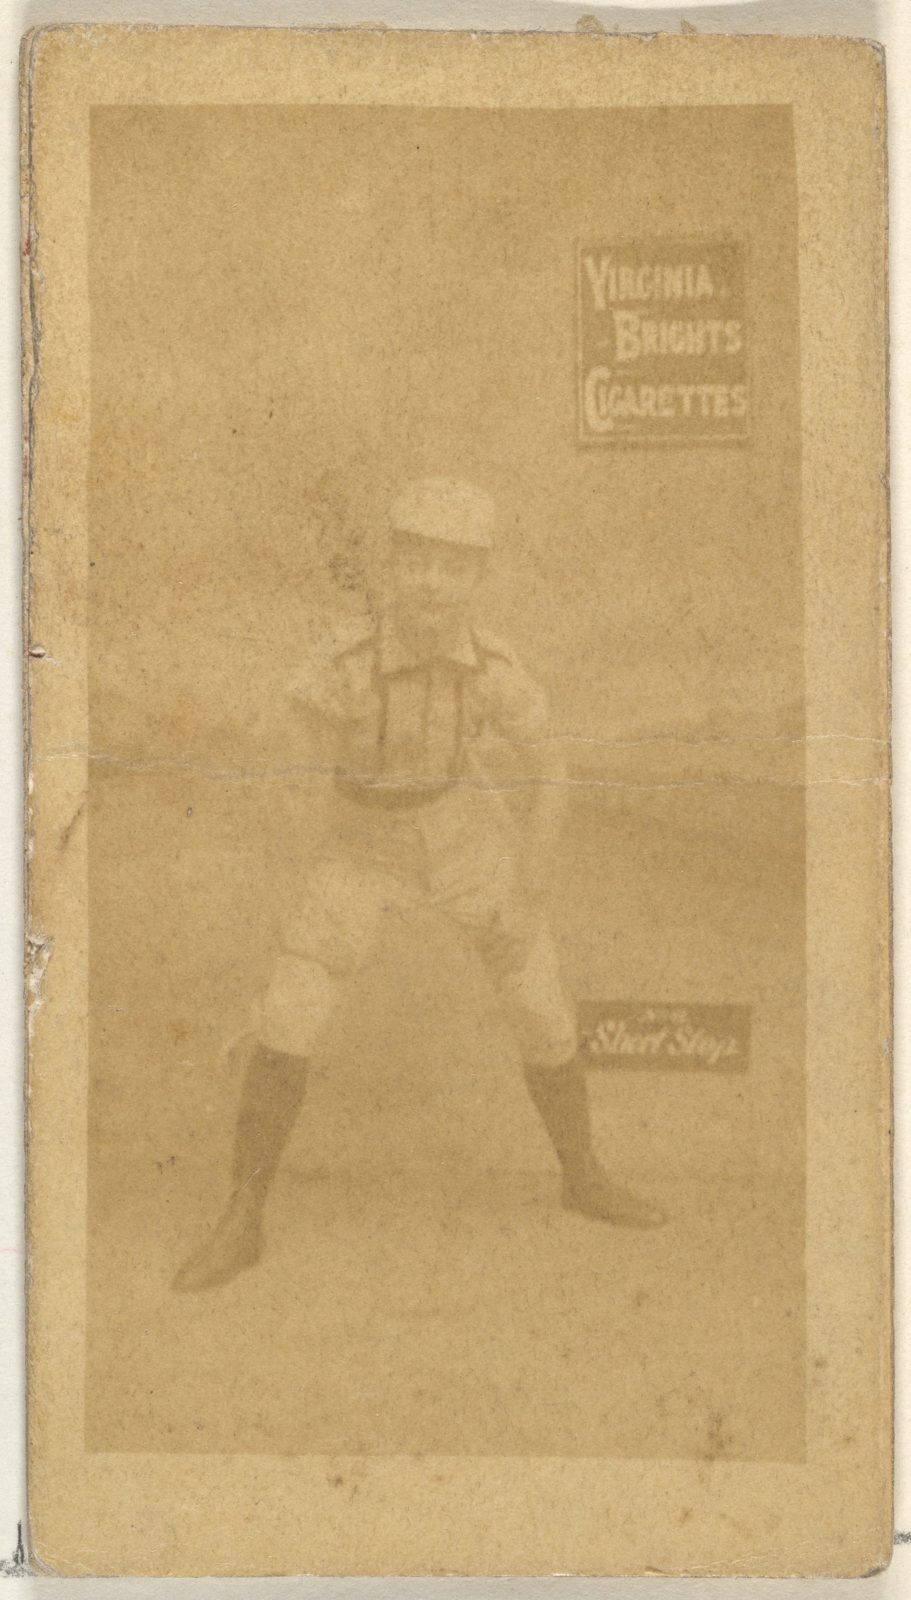 Shortstop, from the Girl Baseball Players series (N48, Type 2) for Virginia Brights Cigarettes